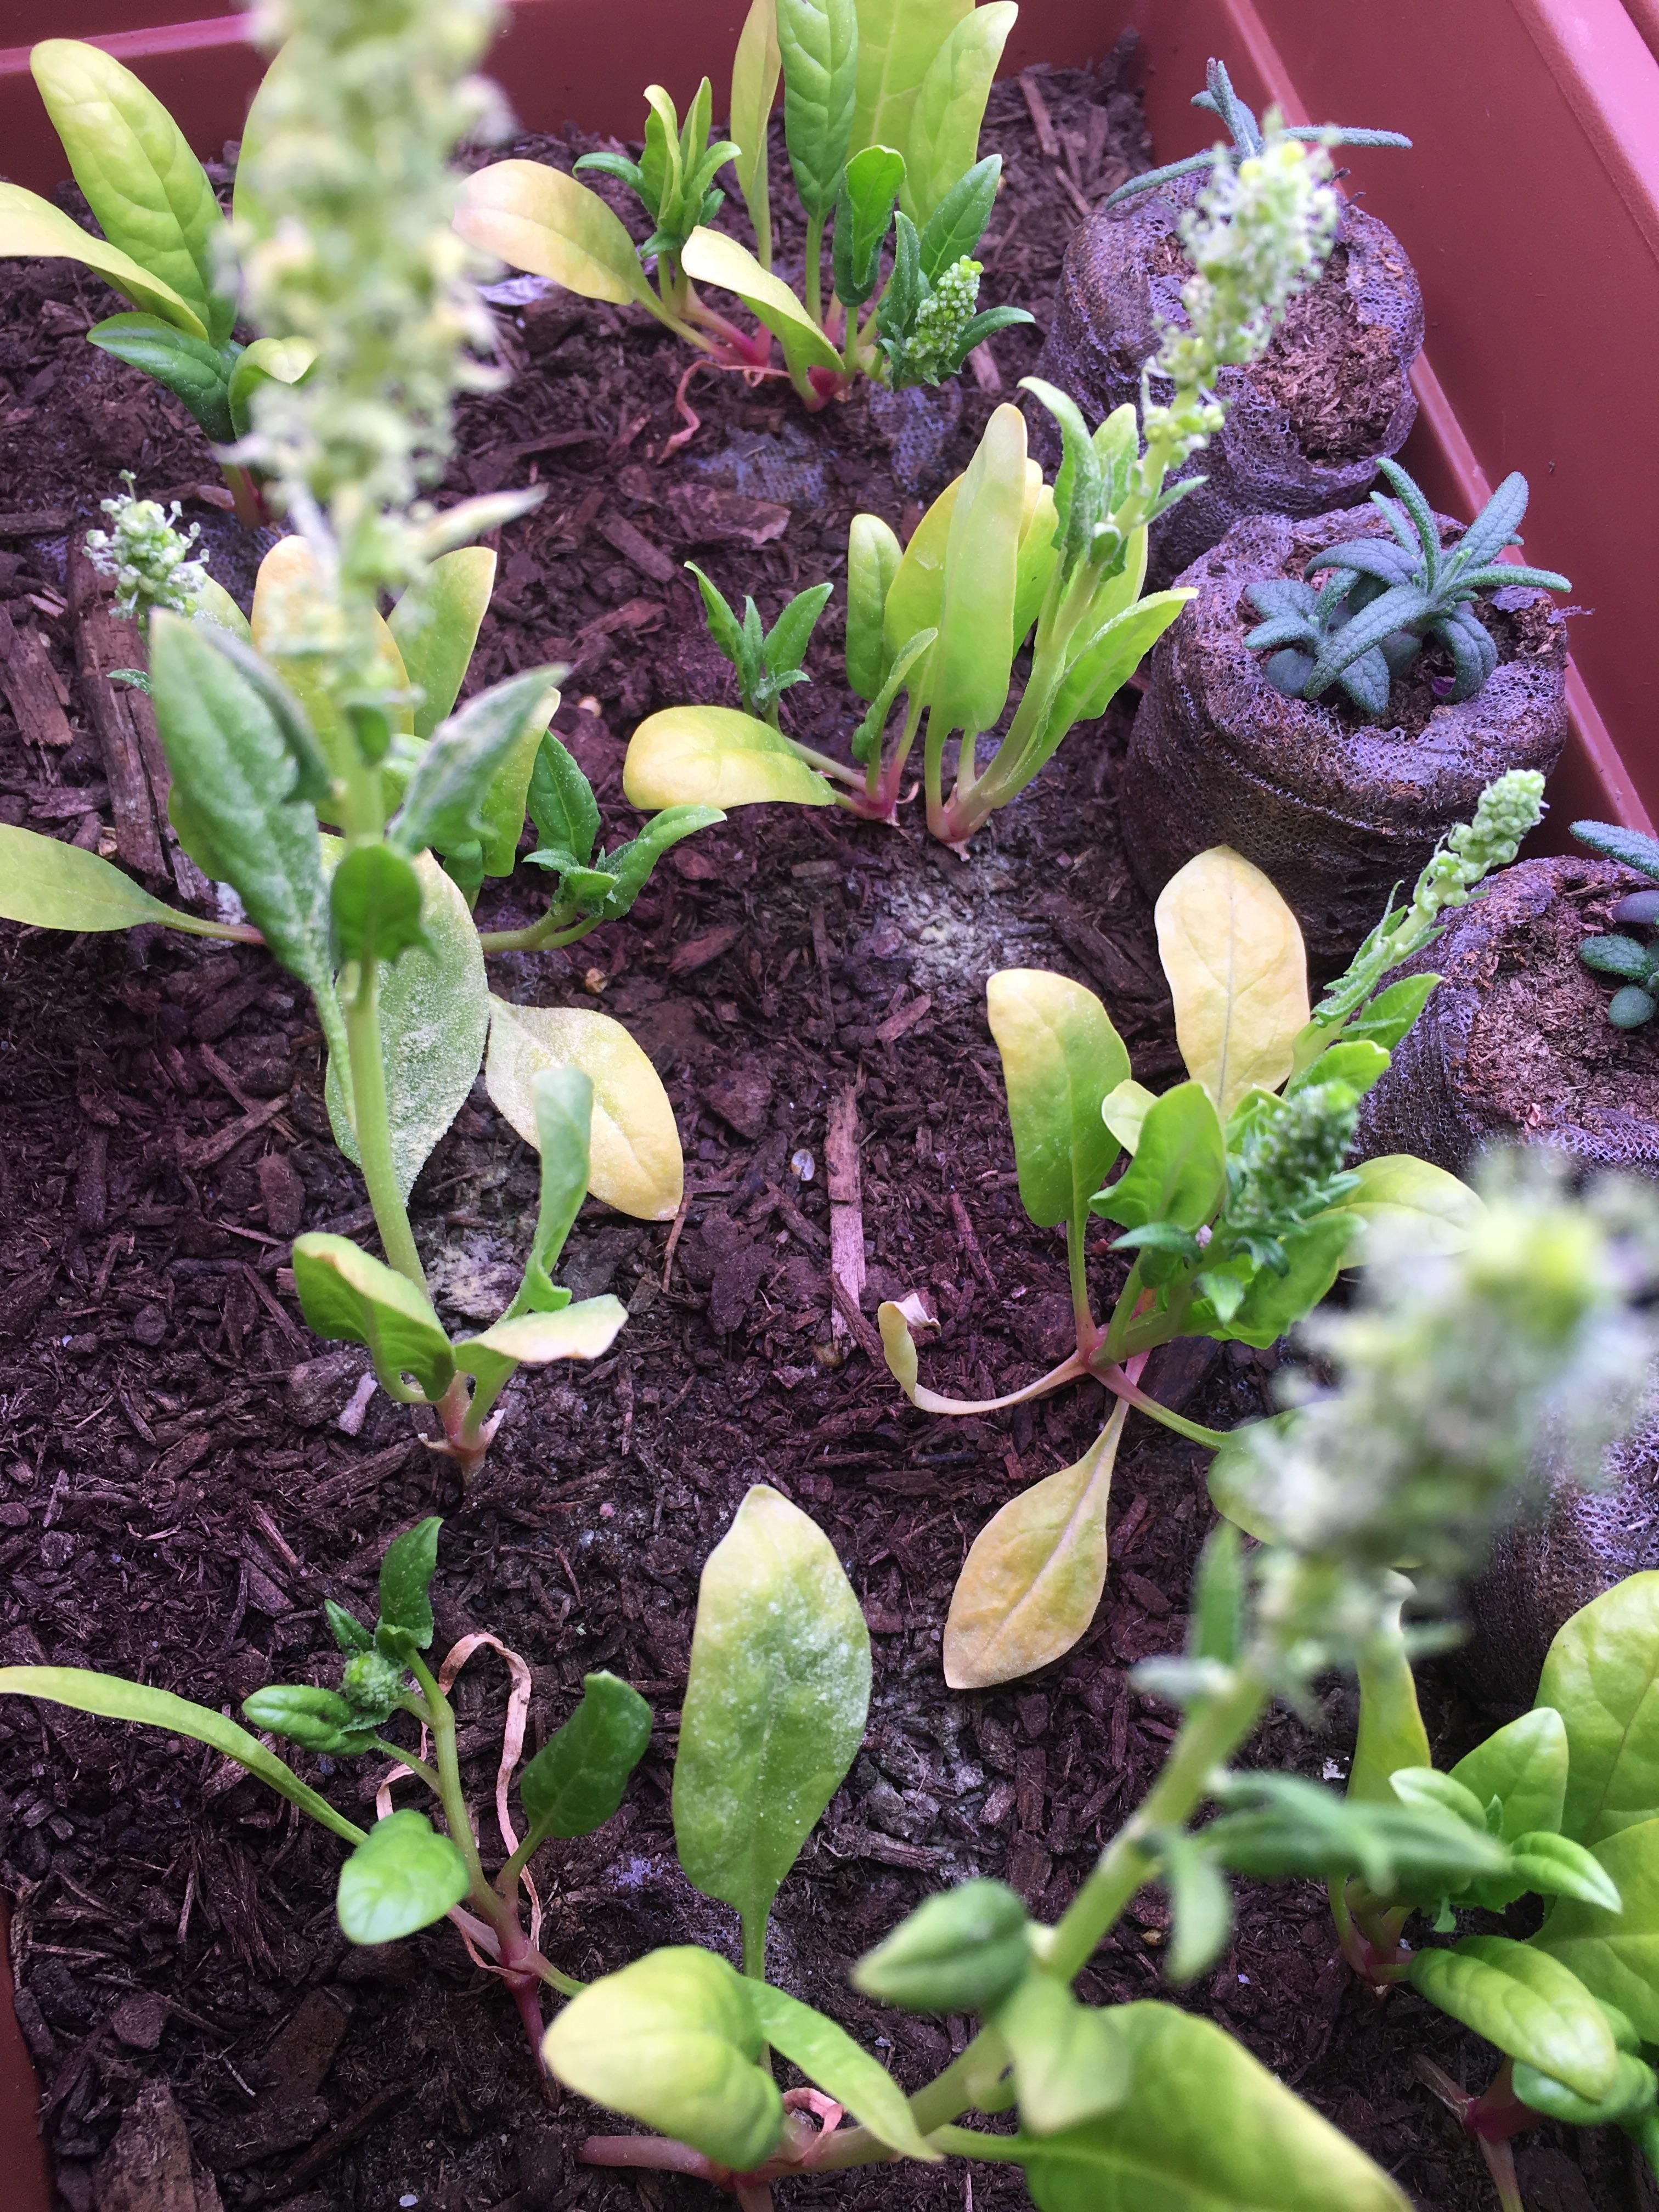 New To Gardening Help My Indoor Spinach Has White Stuff All Over It Are These Molds Or Some Kind Of Fungus Does That Mean I Garden Help Horticulture Plants